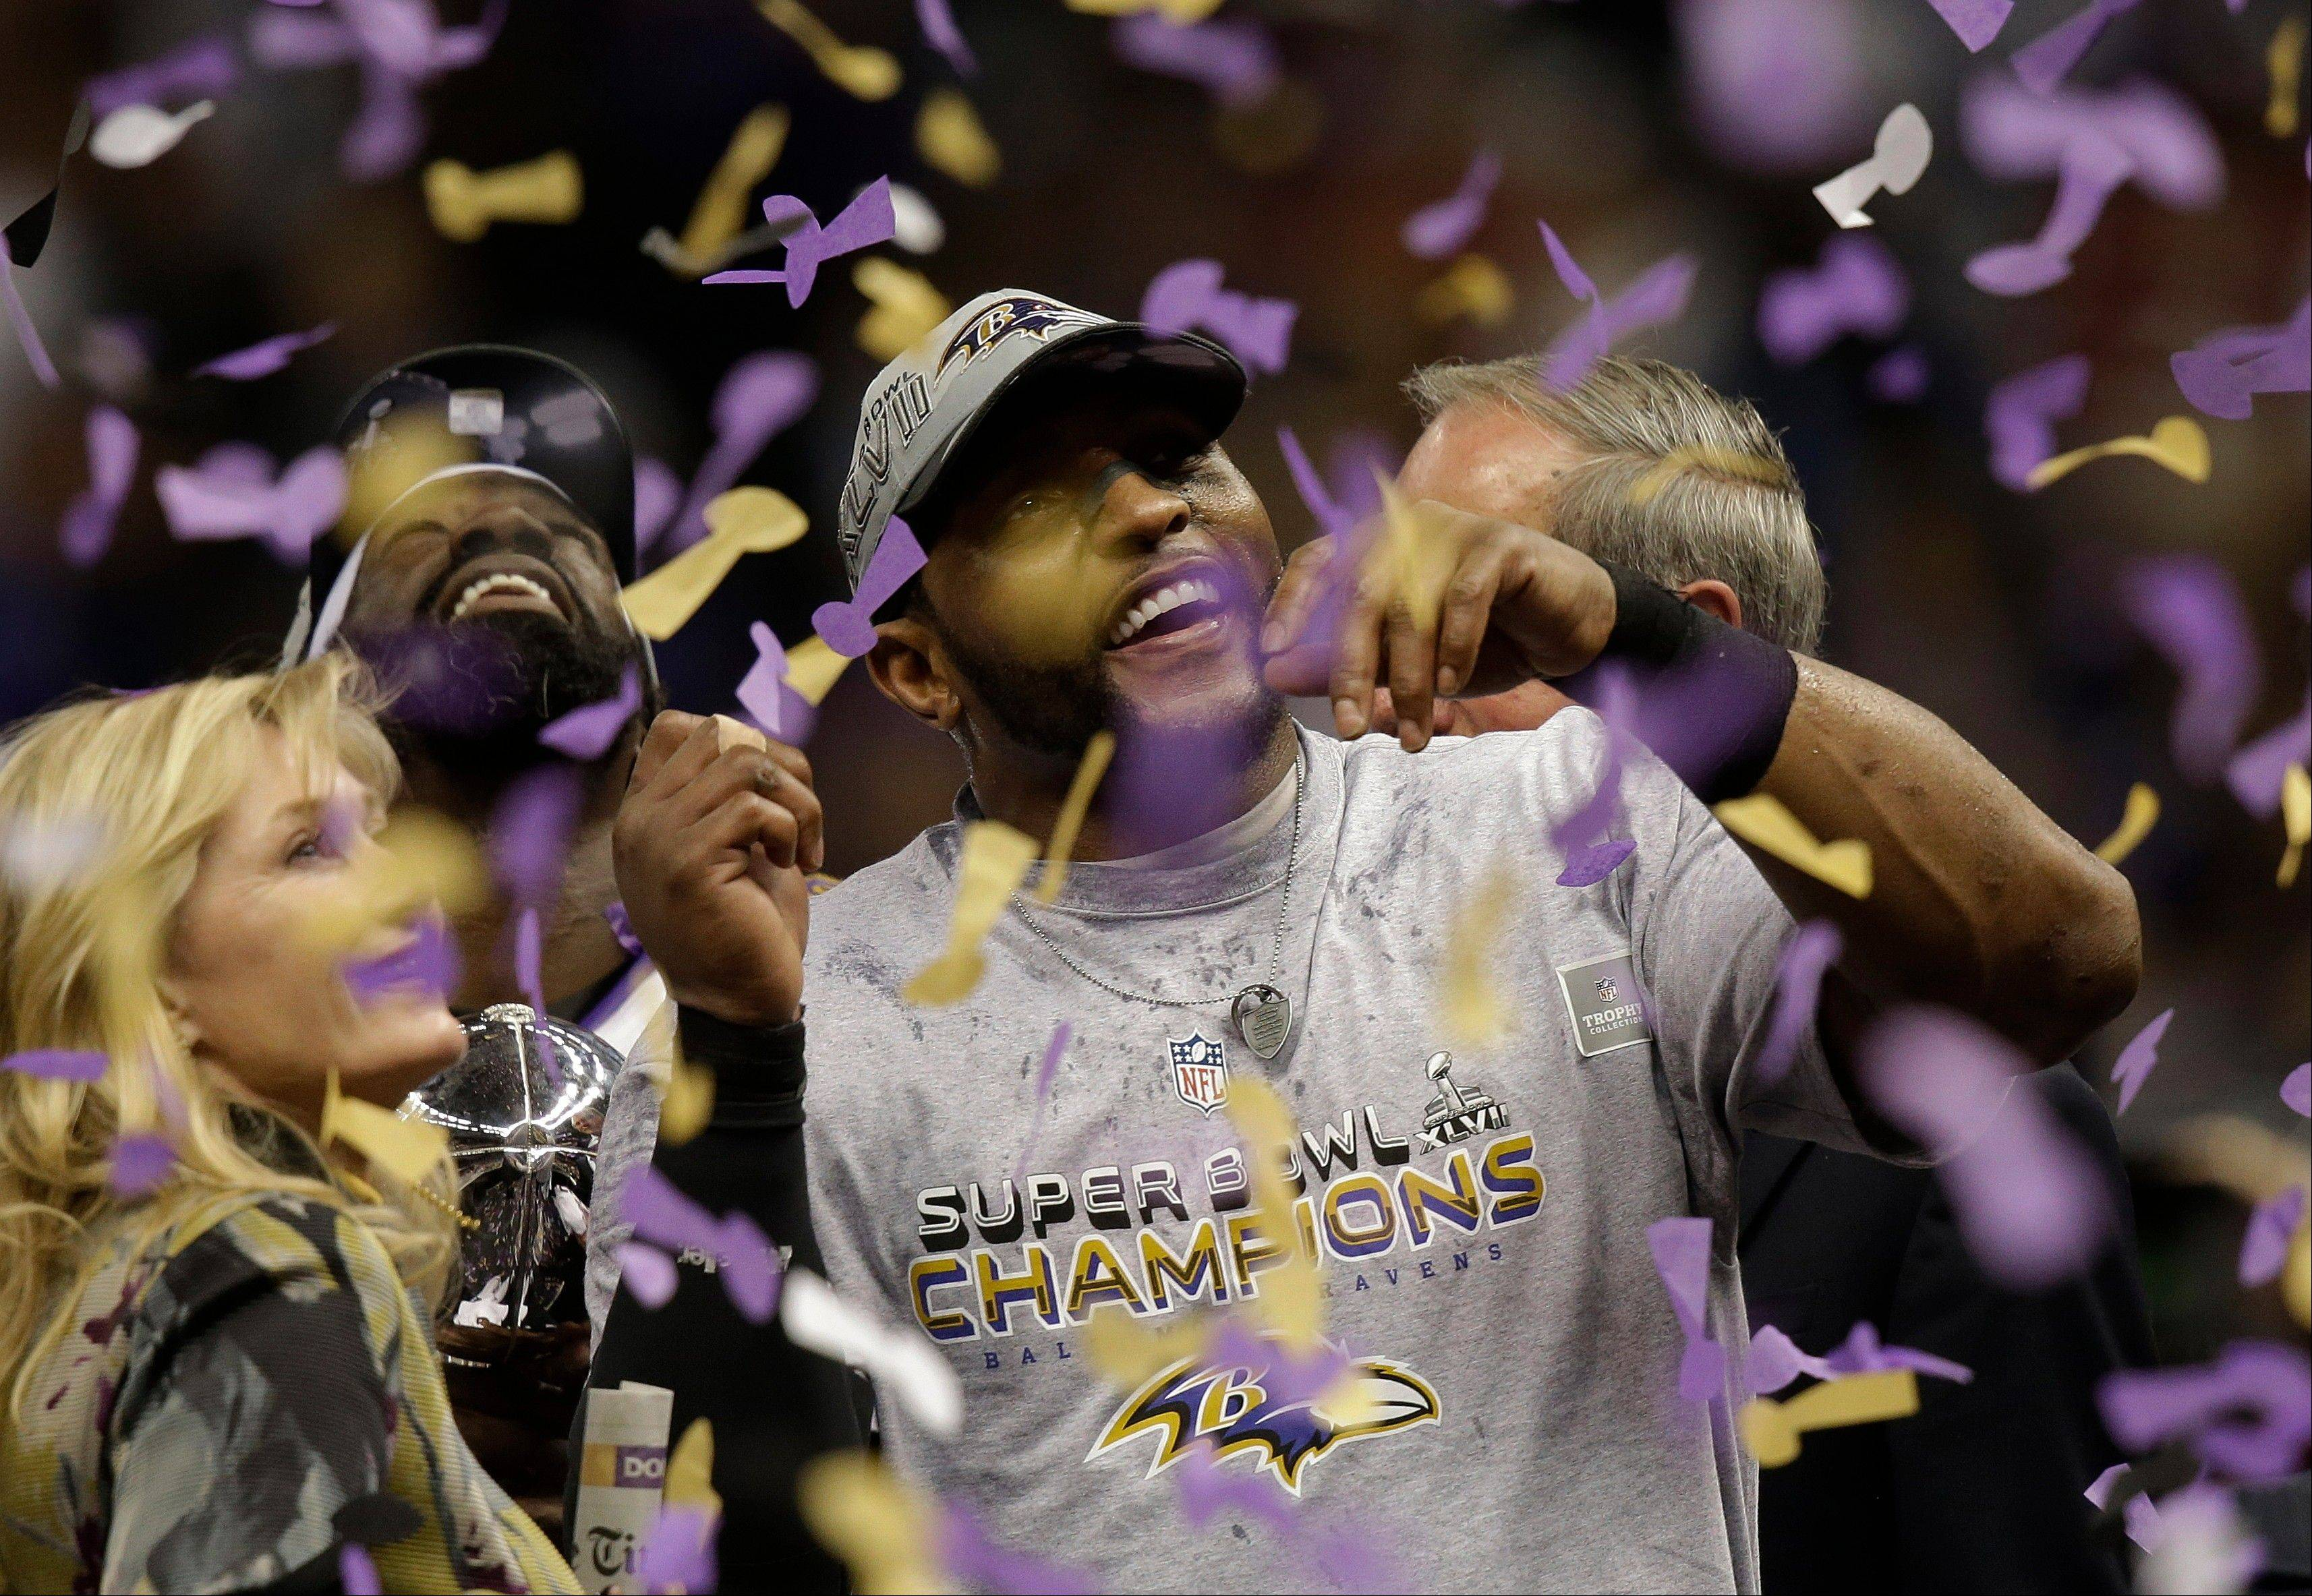 Baltimore Ravens linebacker Ray Lewis celebrates after defeating the San Francisco 49ers 34-31 in the NFL Super Bowl XLVII football game.